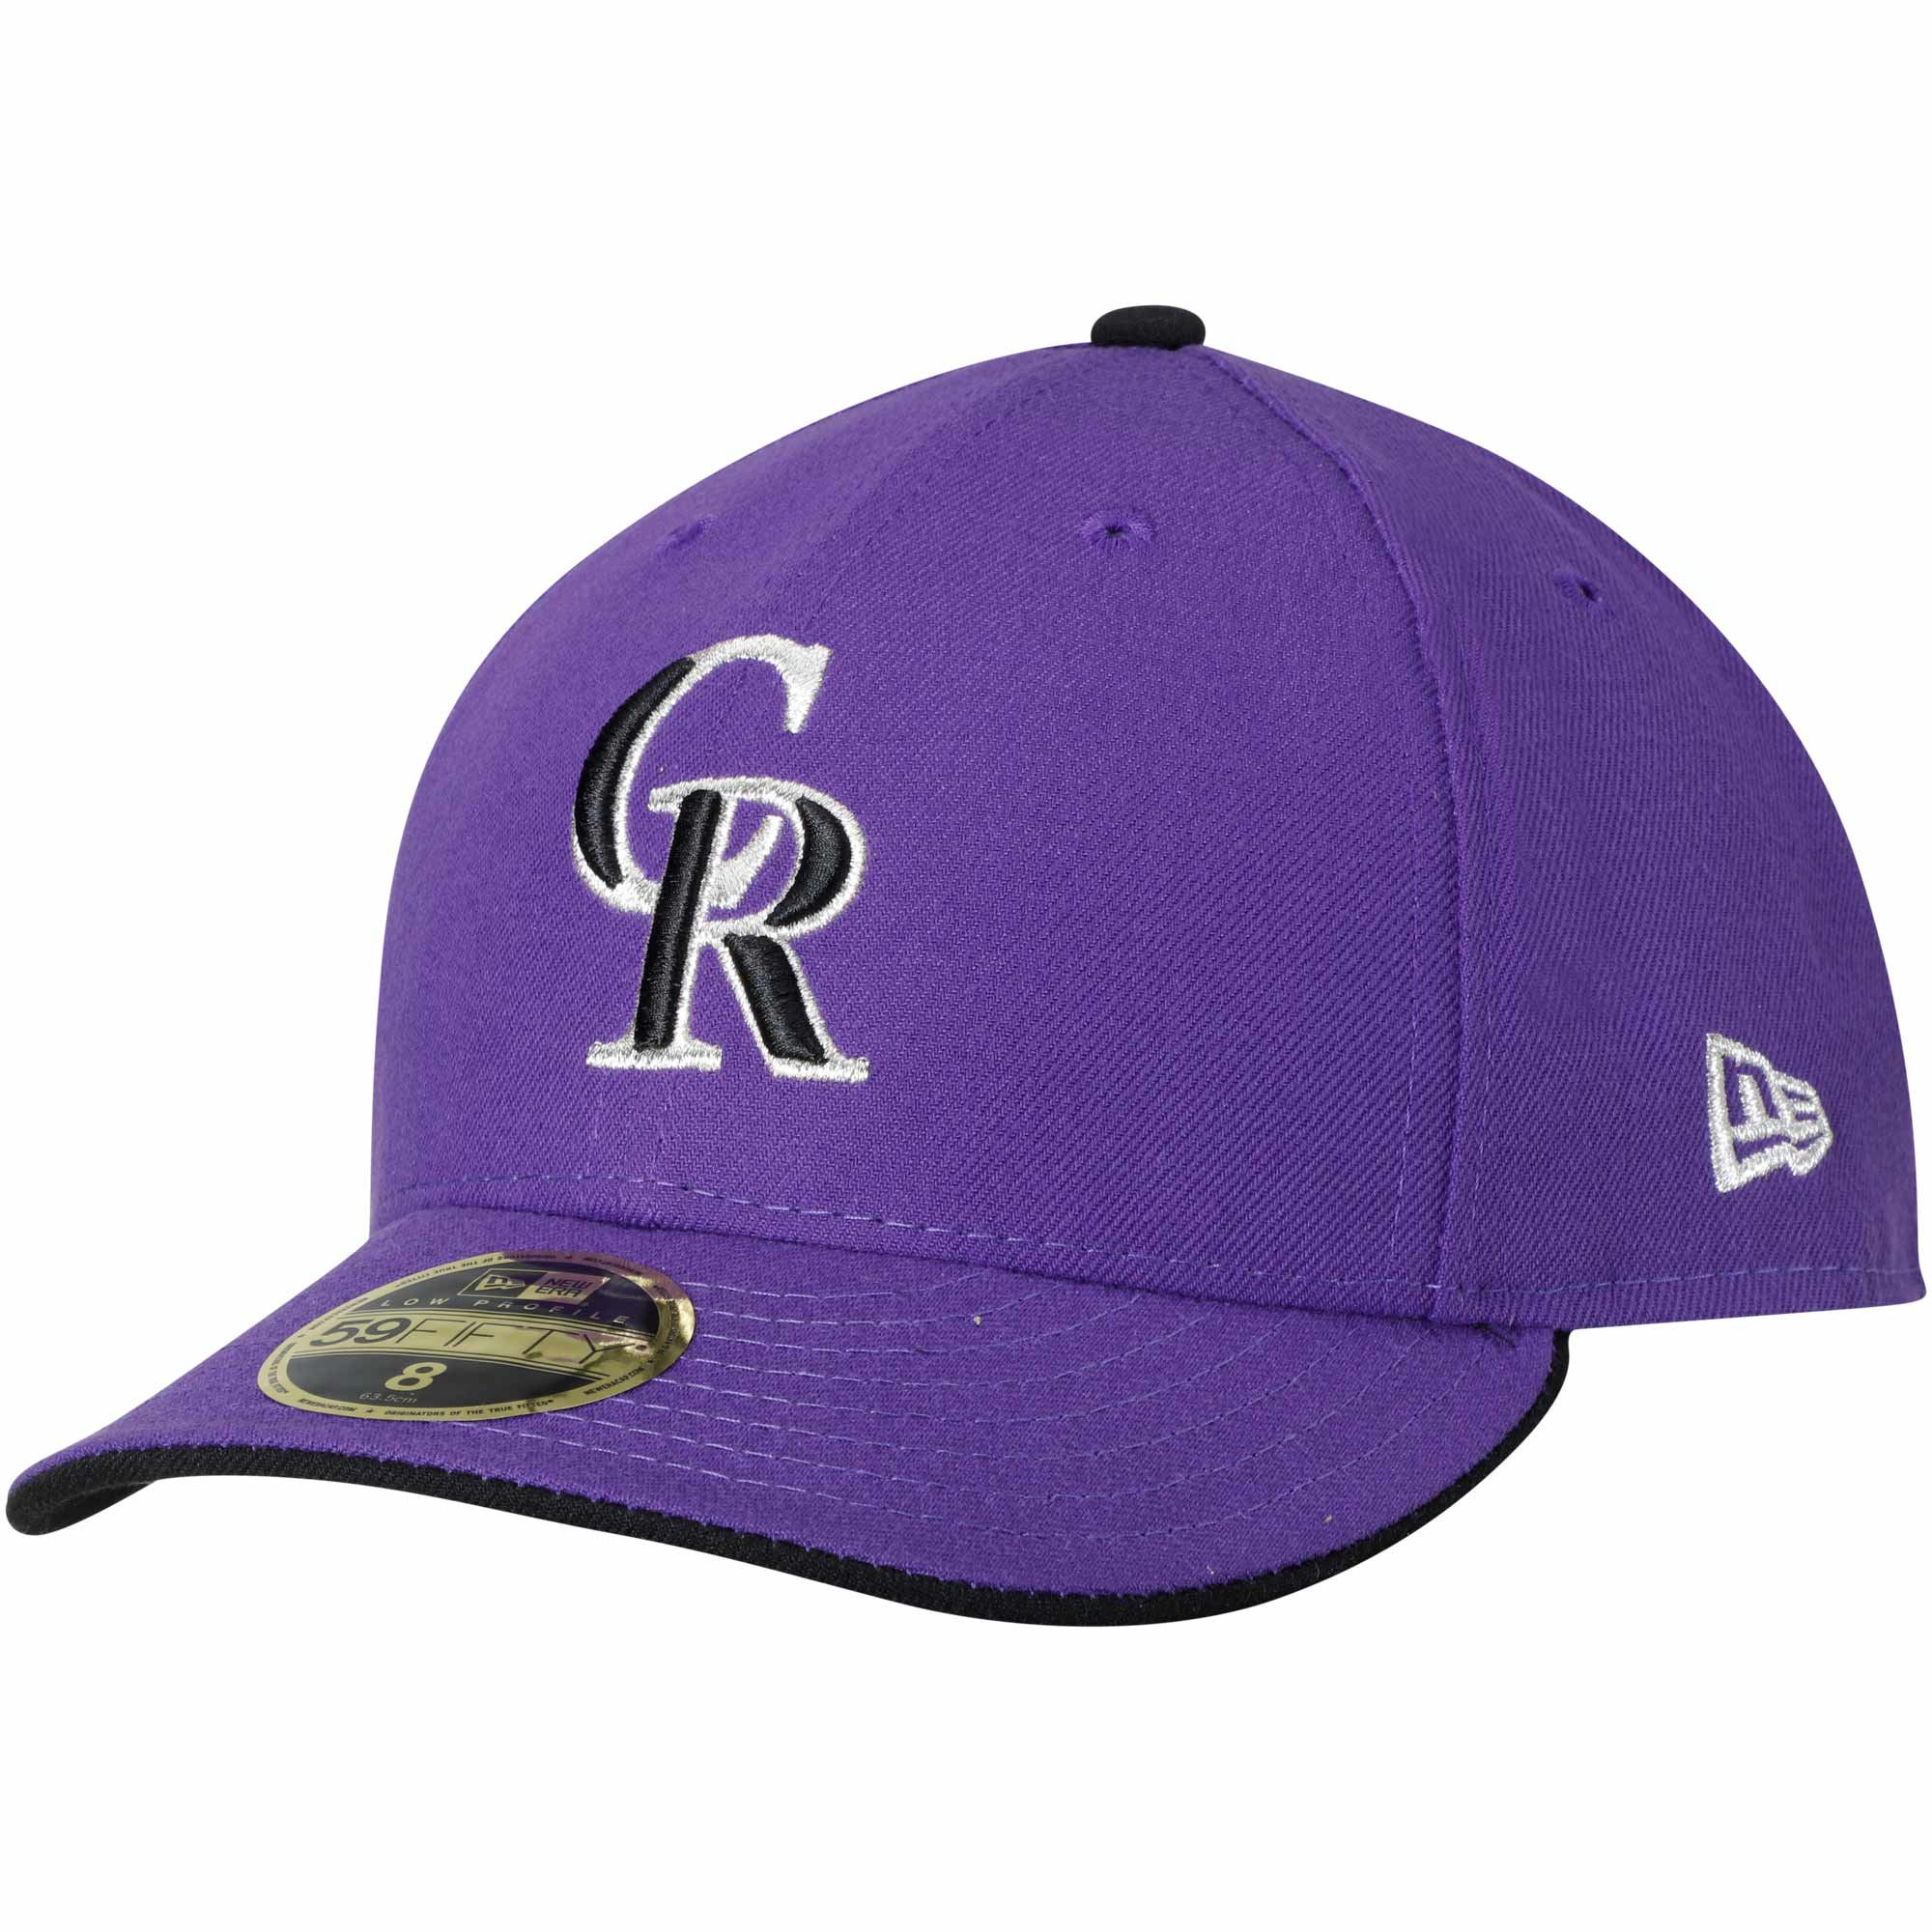 Colorado Rockies New Era Alternate 2 Authentic Collection On-Field Low Profile 59FIFTY Fitted Hat - Purple